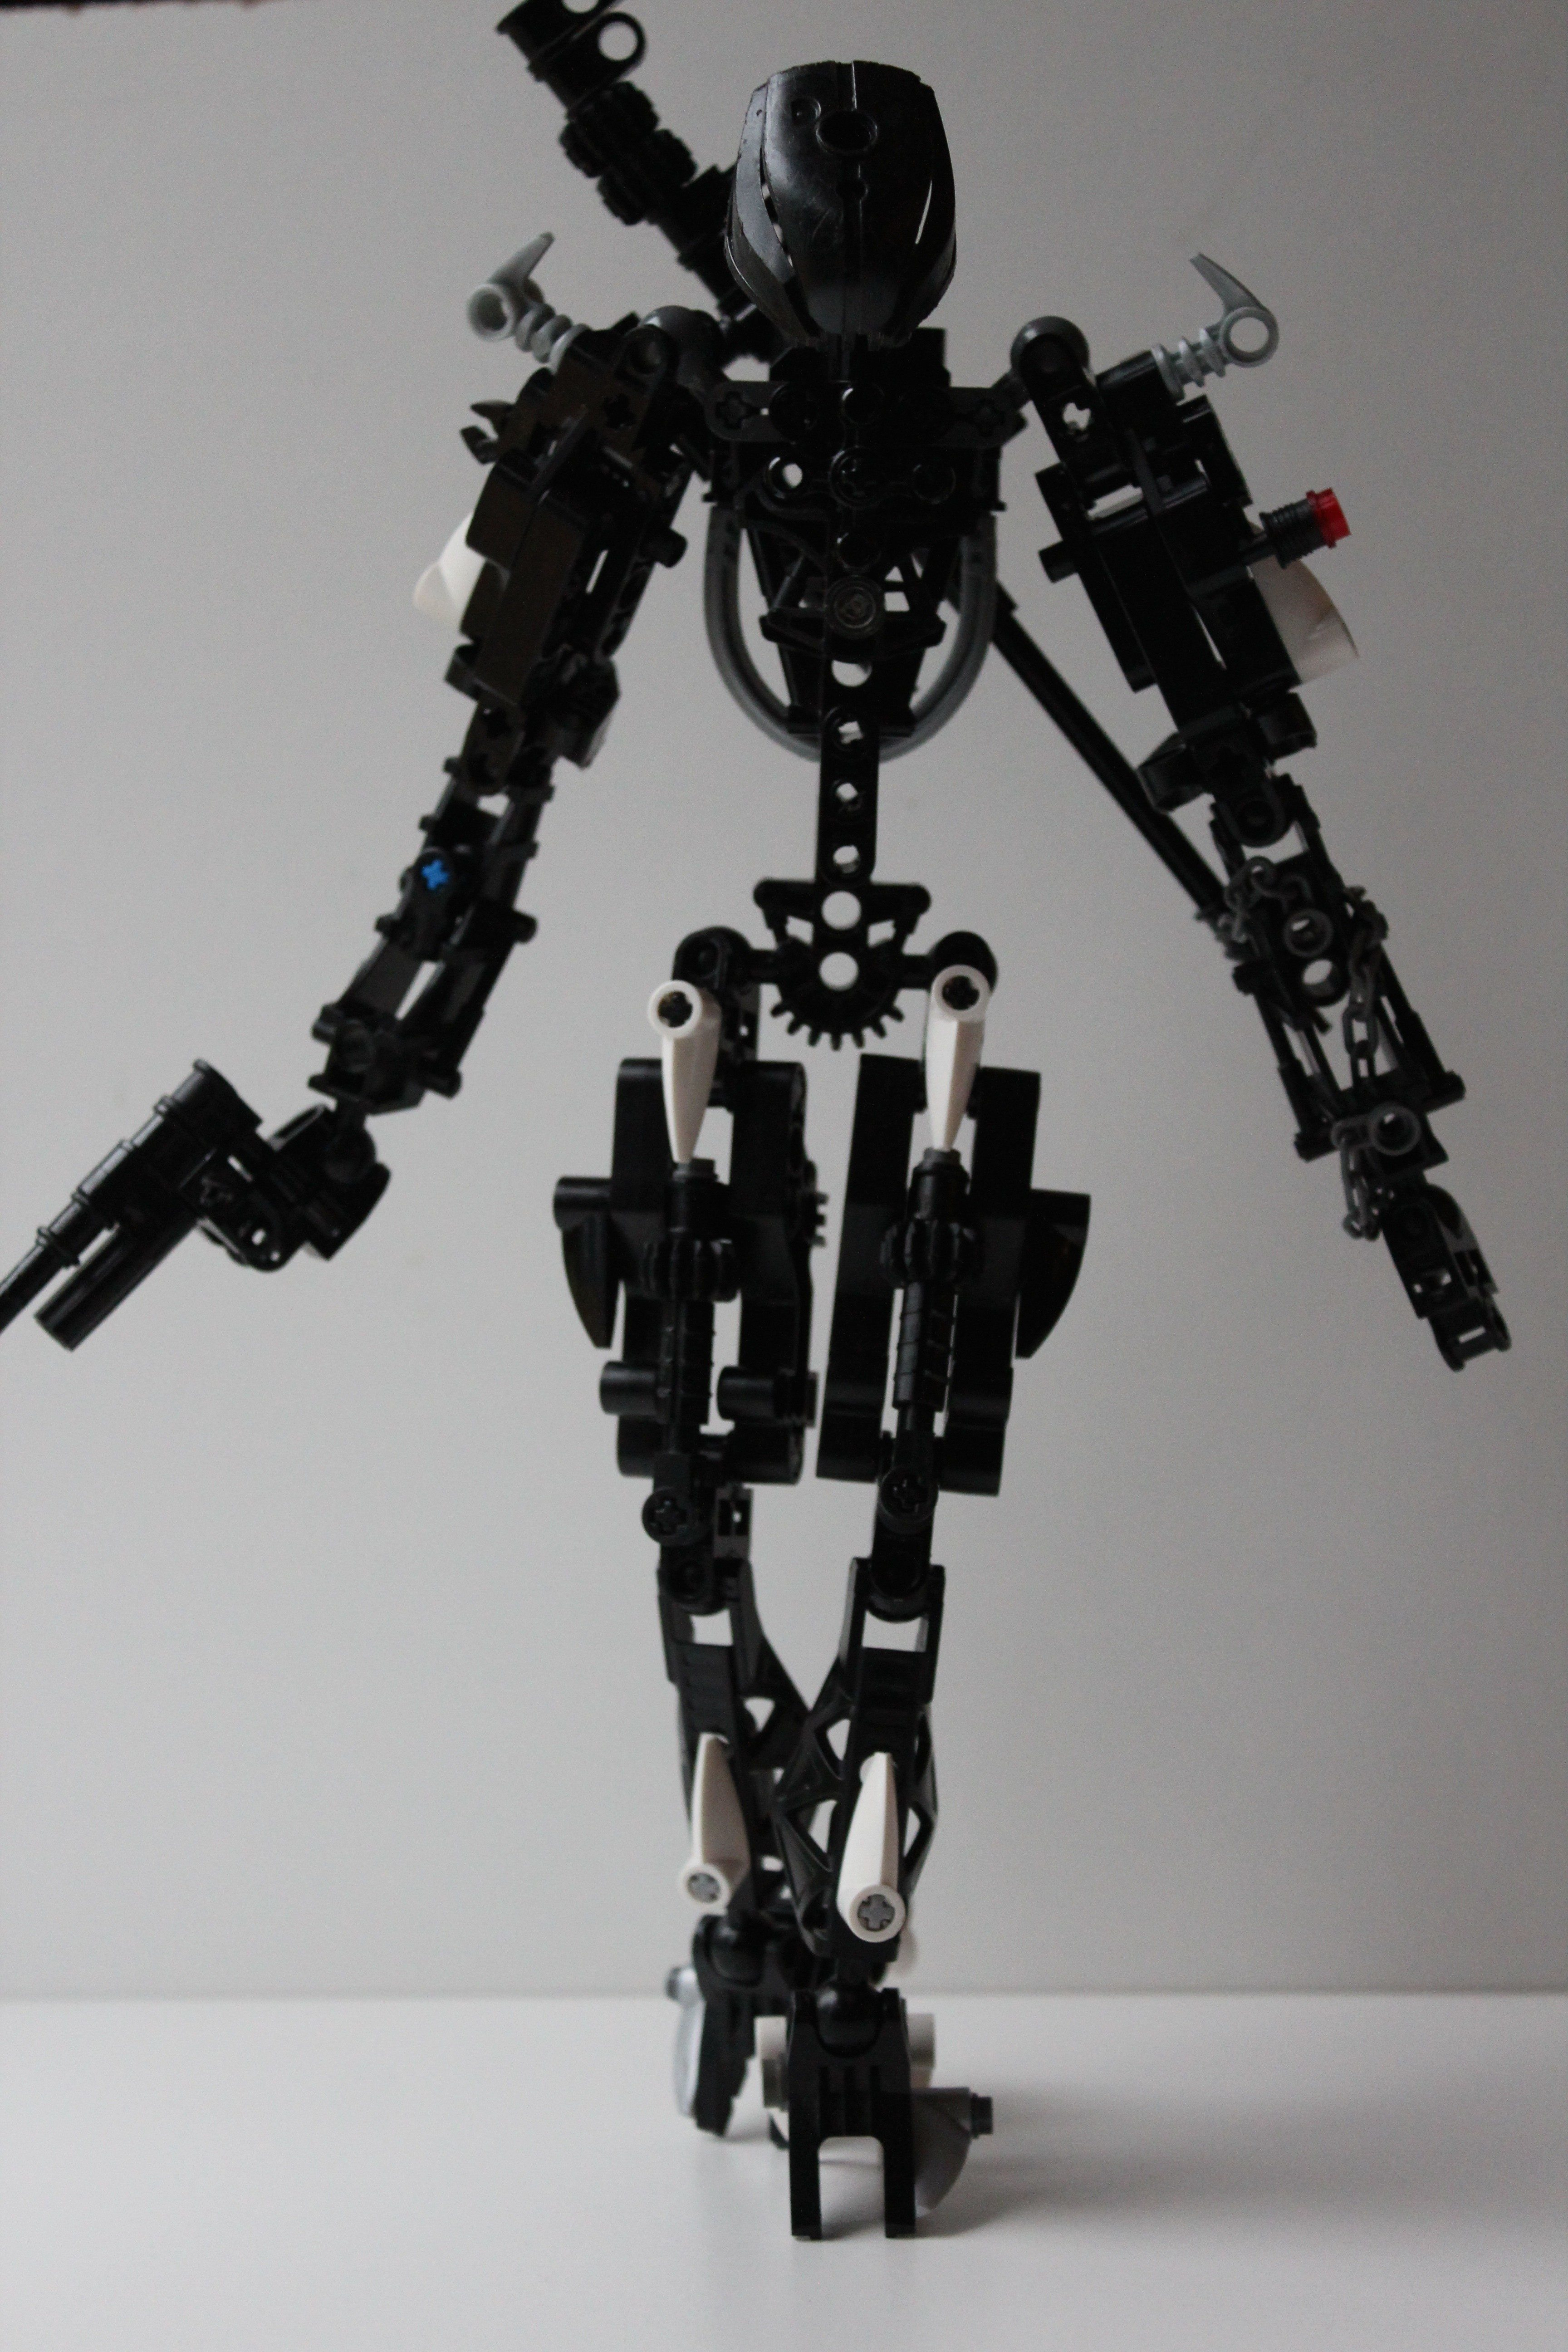 First proper MOC: Dark Umbra (it's meant to be generic